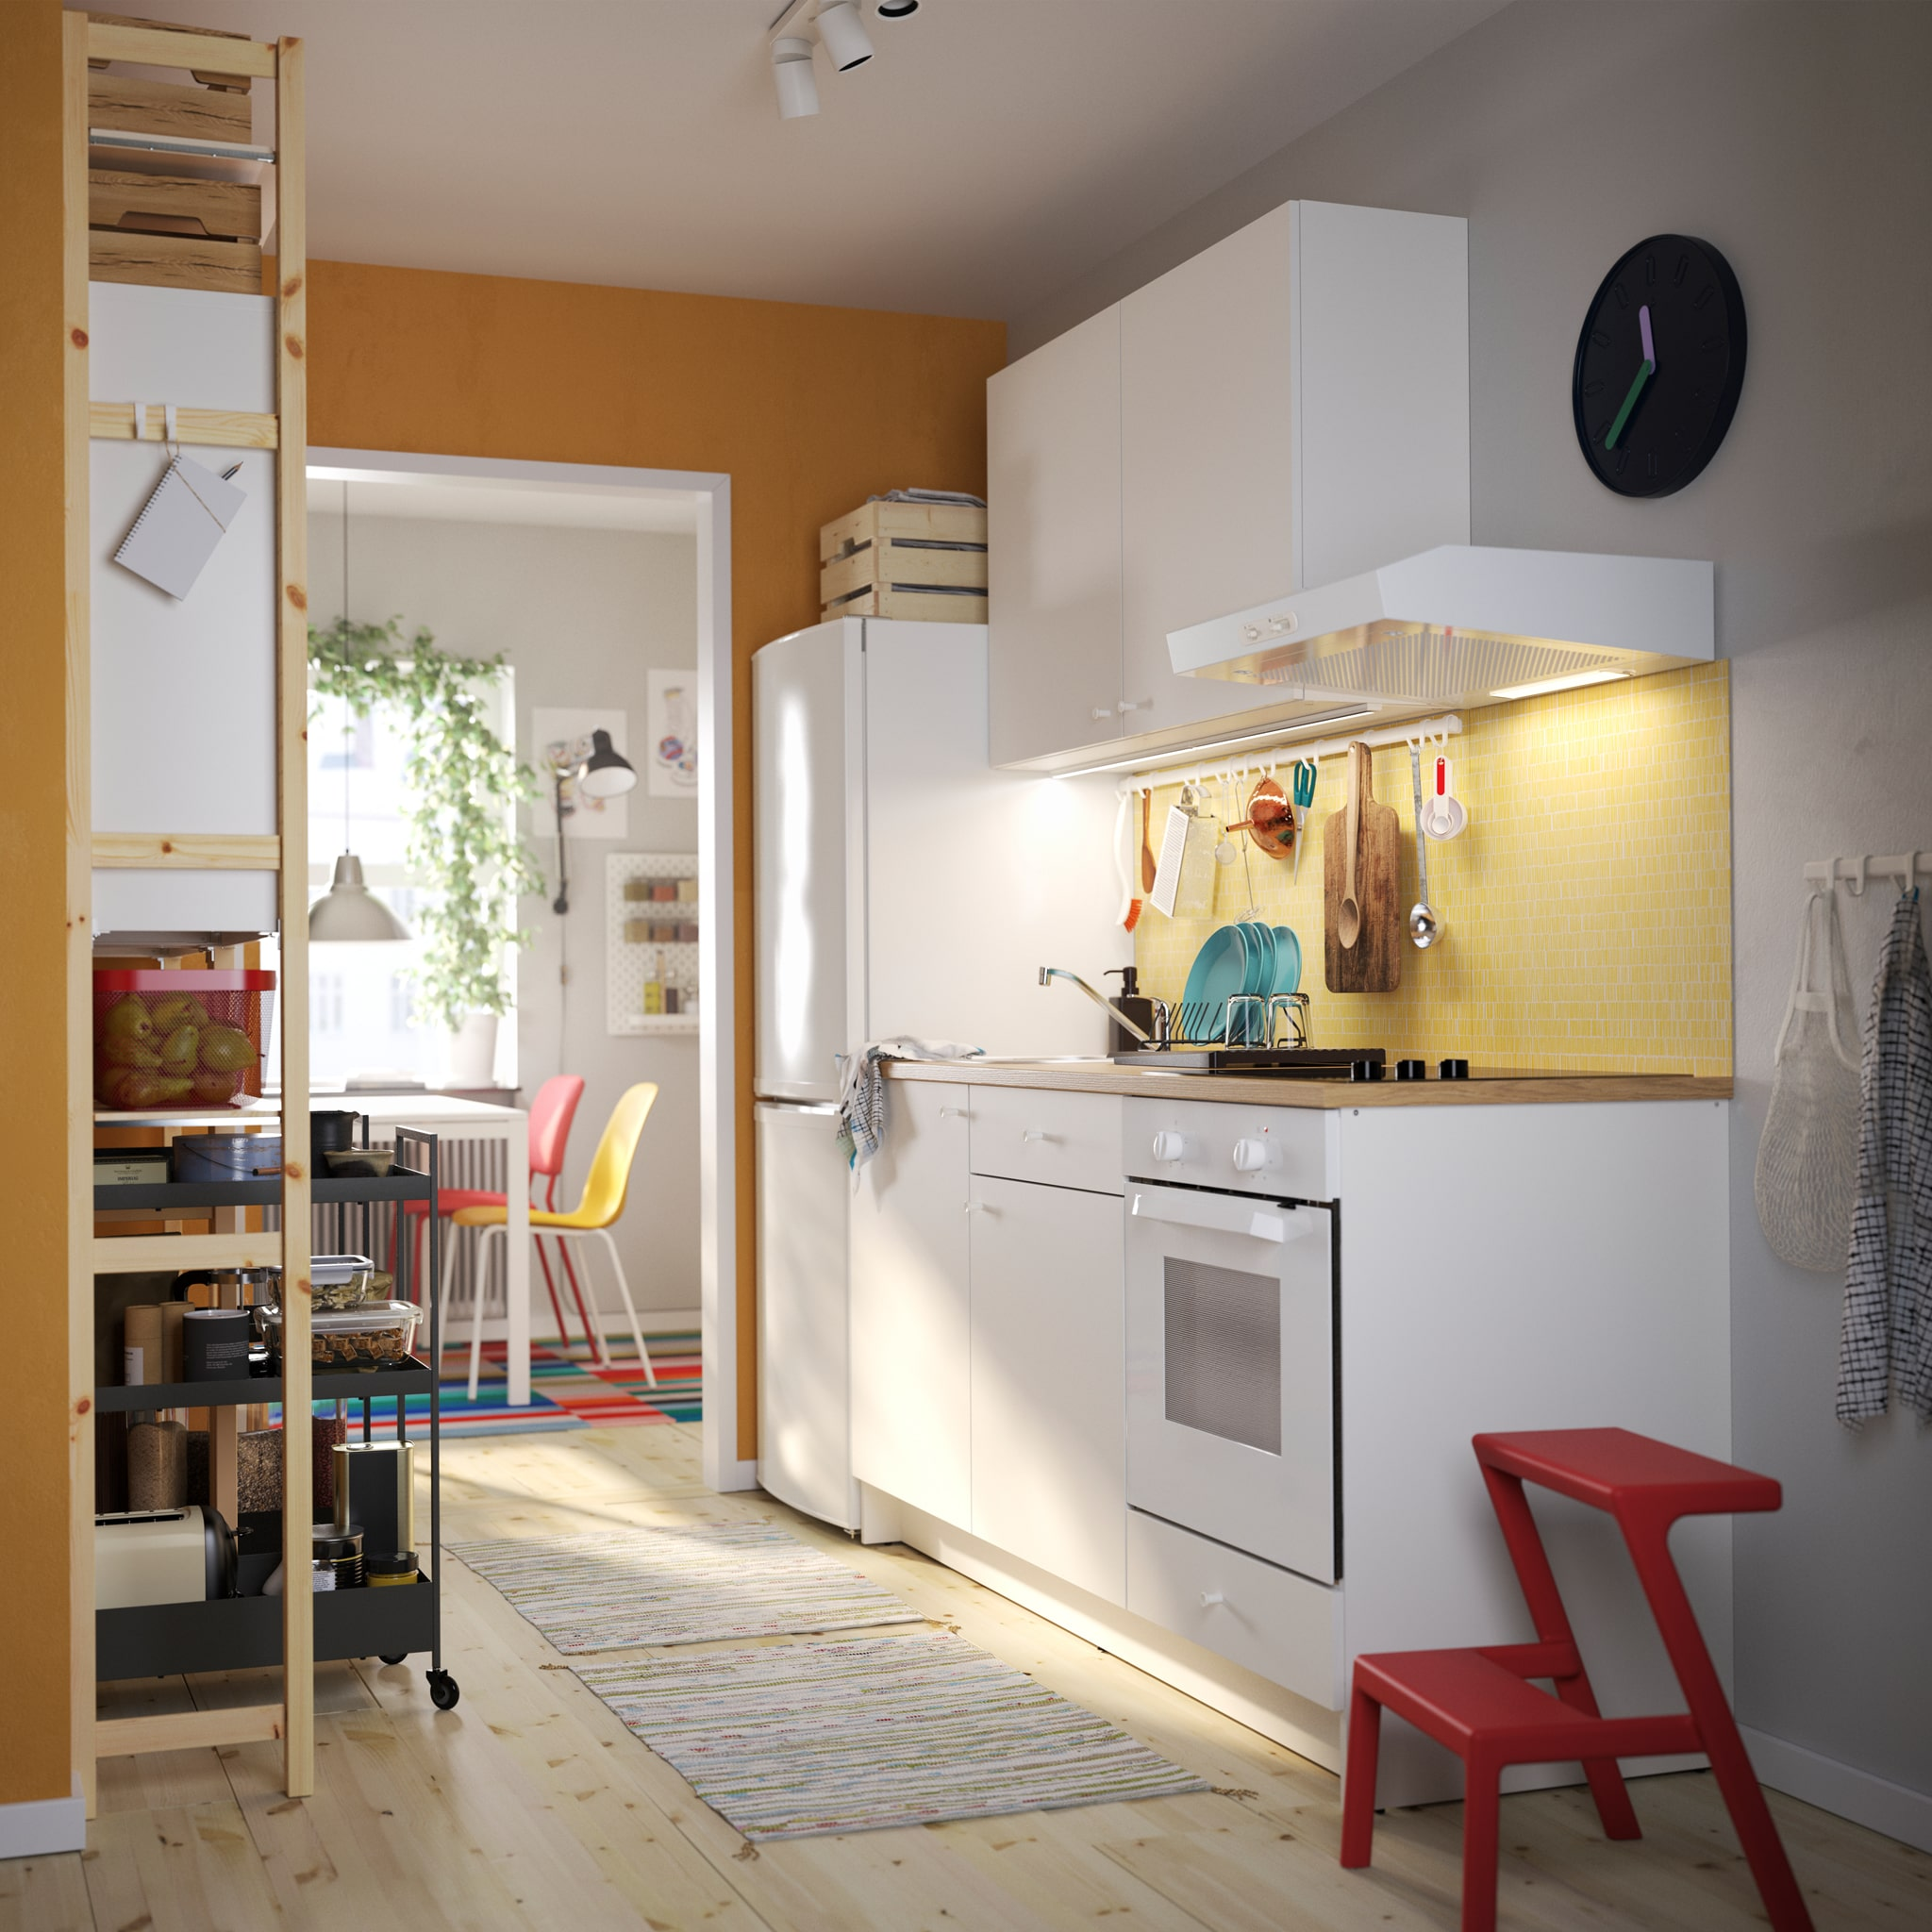 A KNOXHULT kitchen in white, a red step stool, a shelving unit in pine, black trolleys and colourful kitchen chairs.